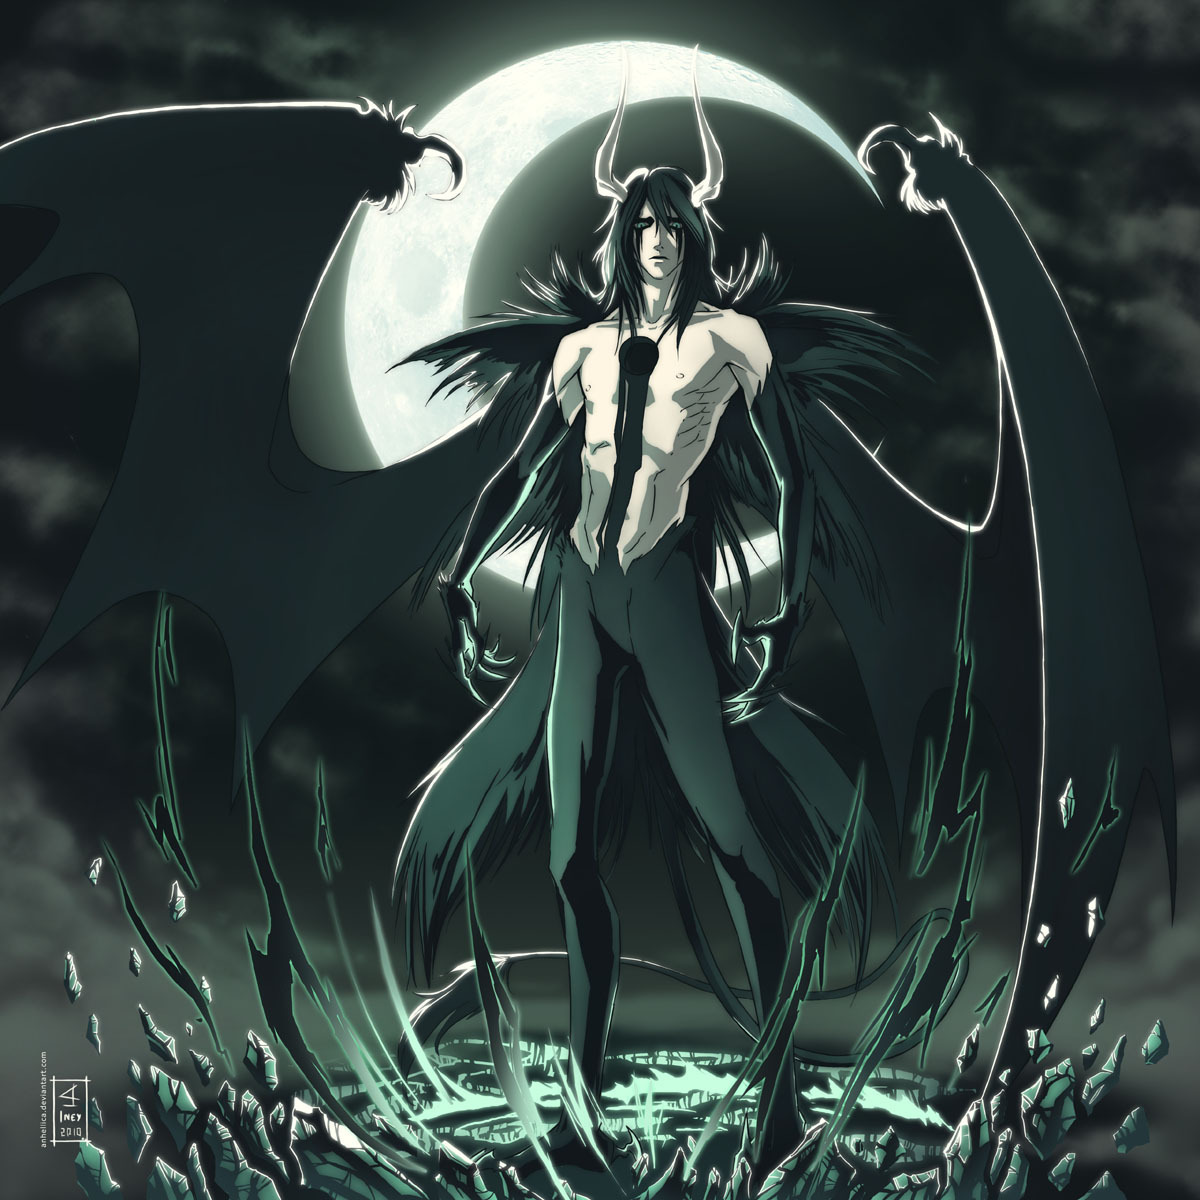 Re Coolest Looking Anime Character